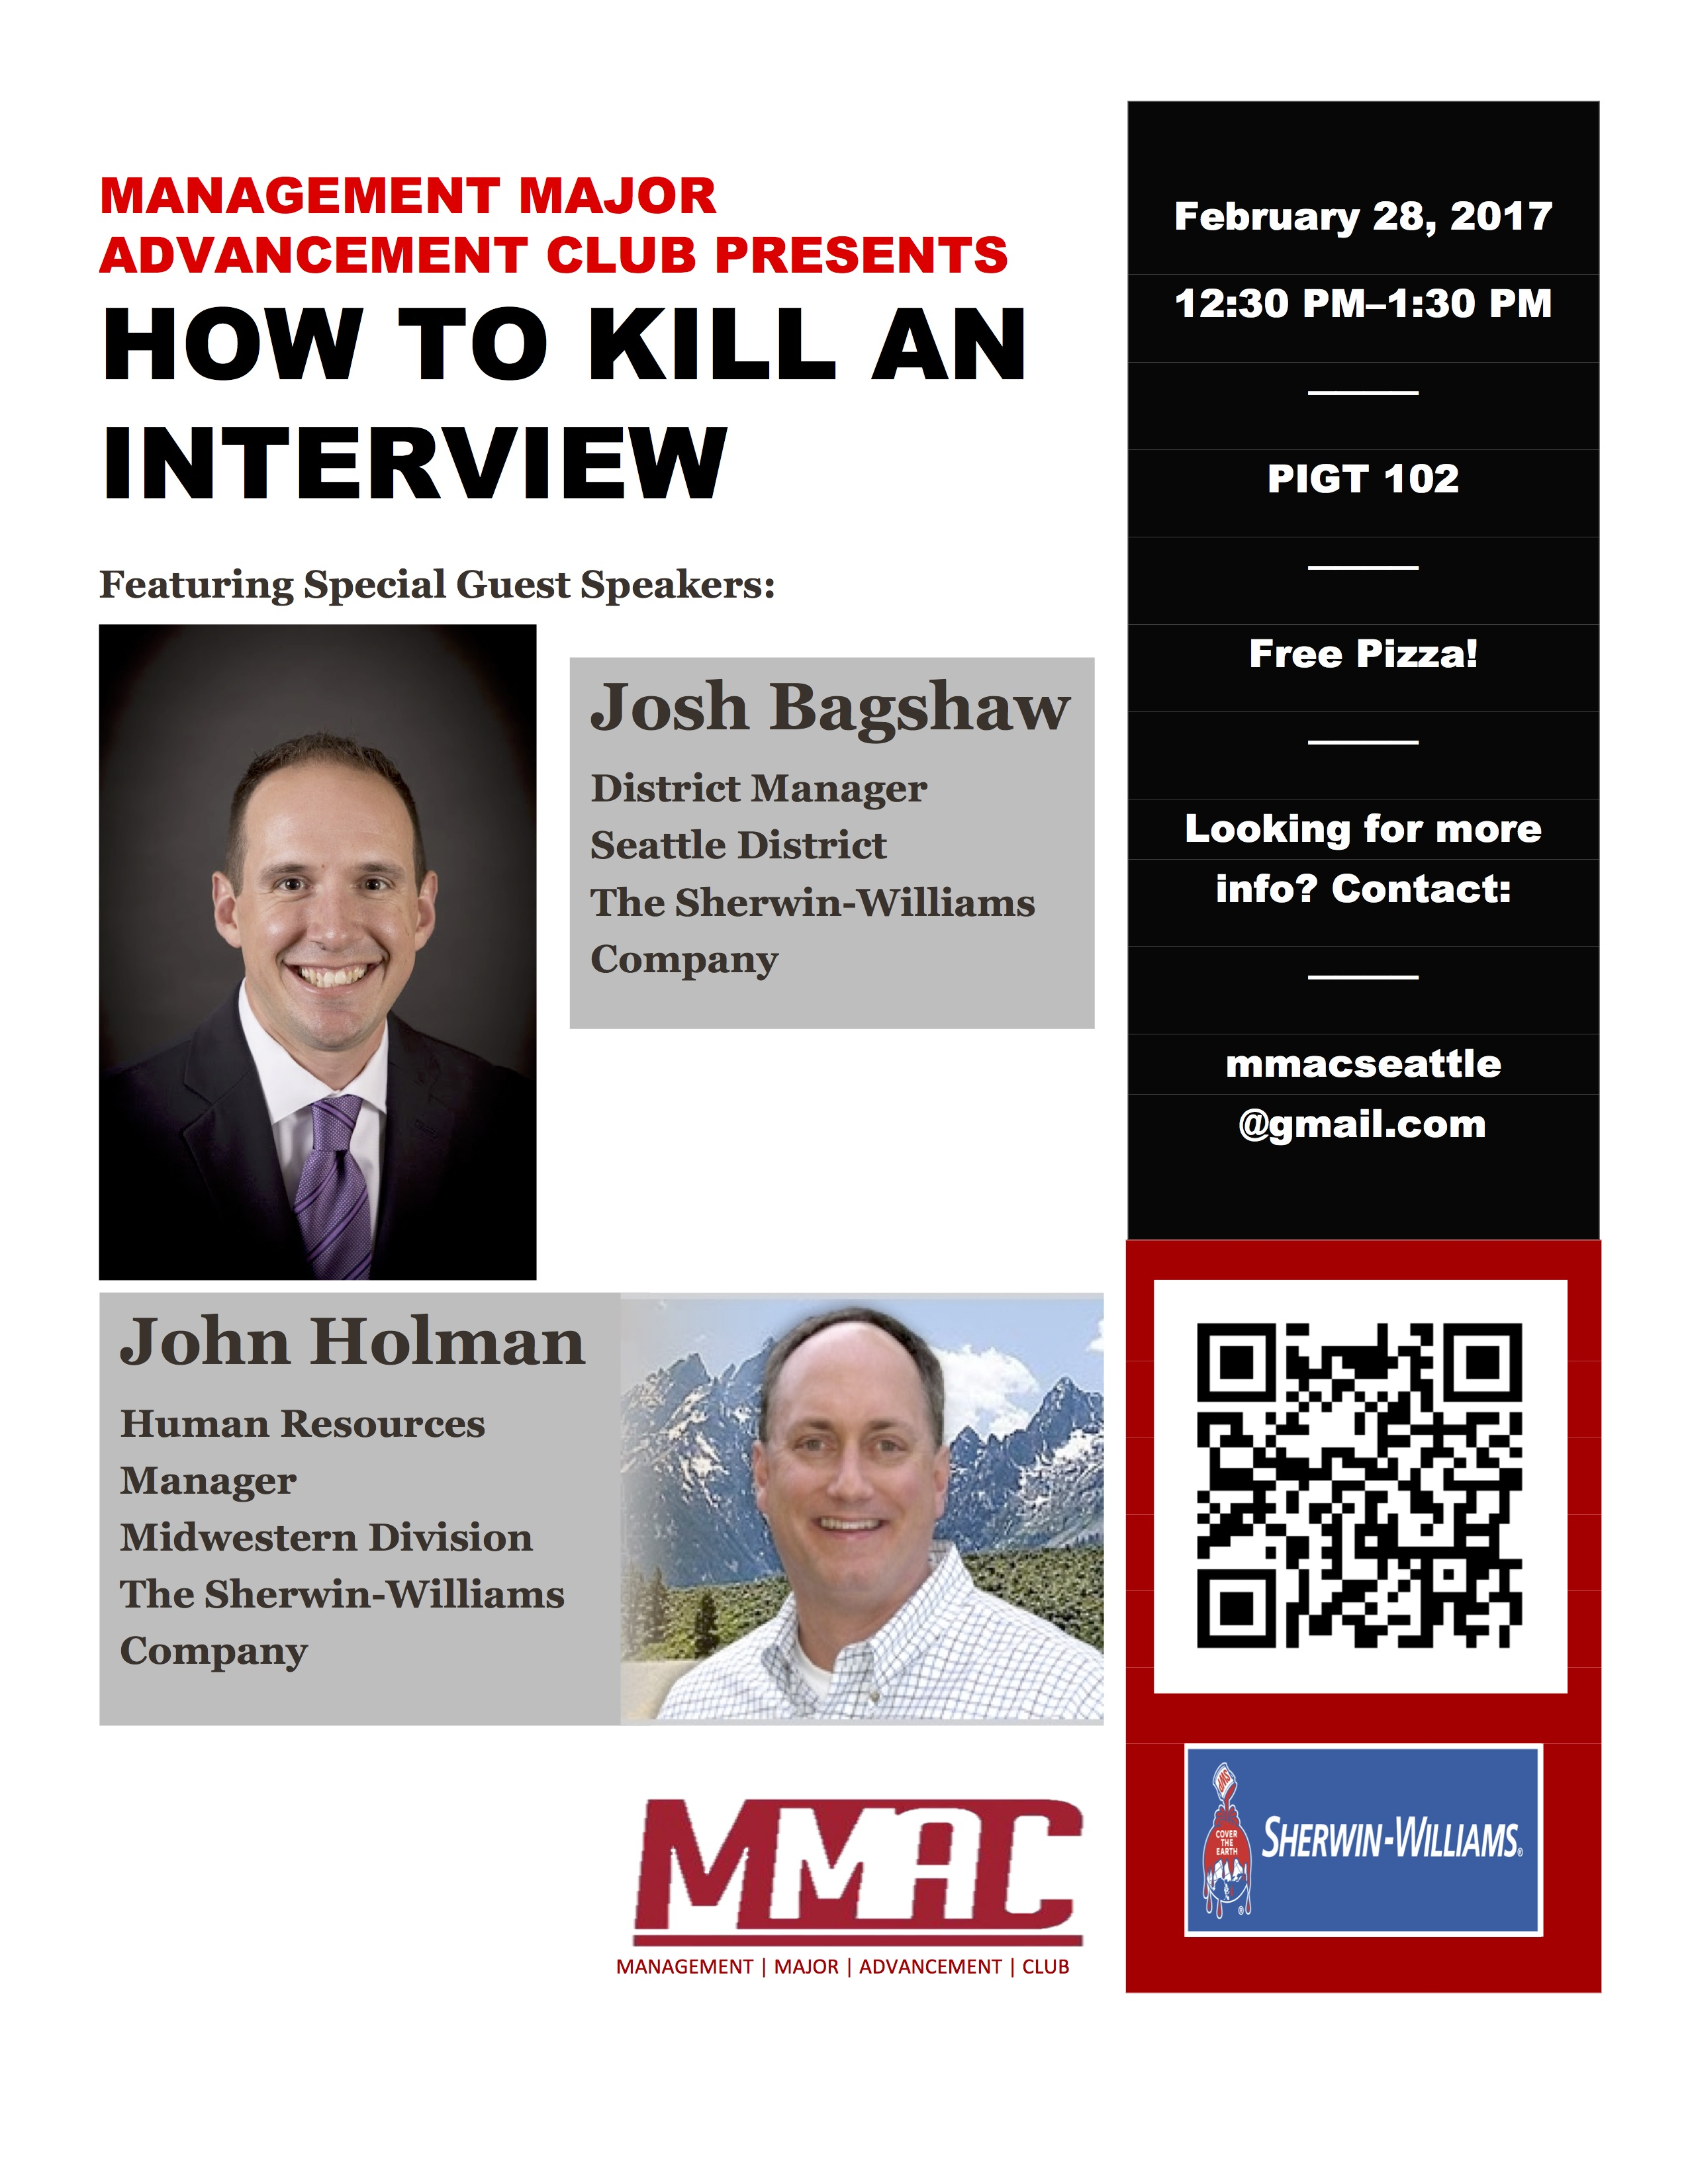 How to Kill an Interview